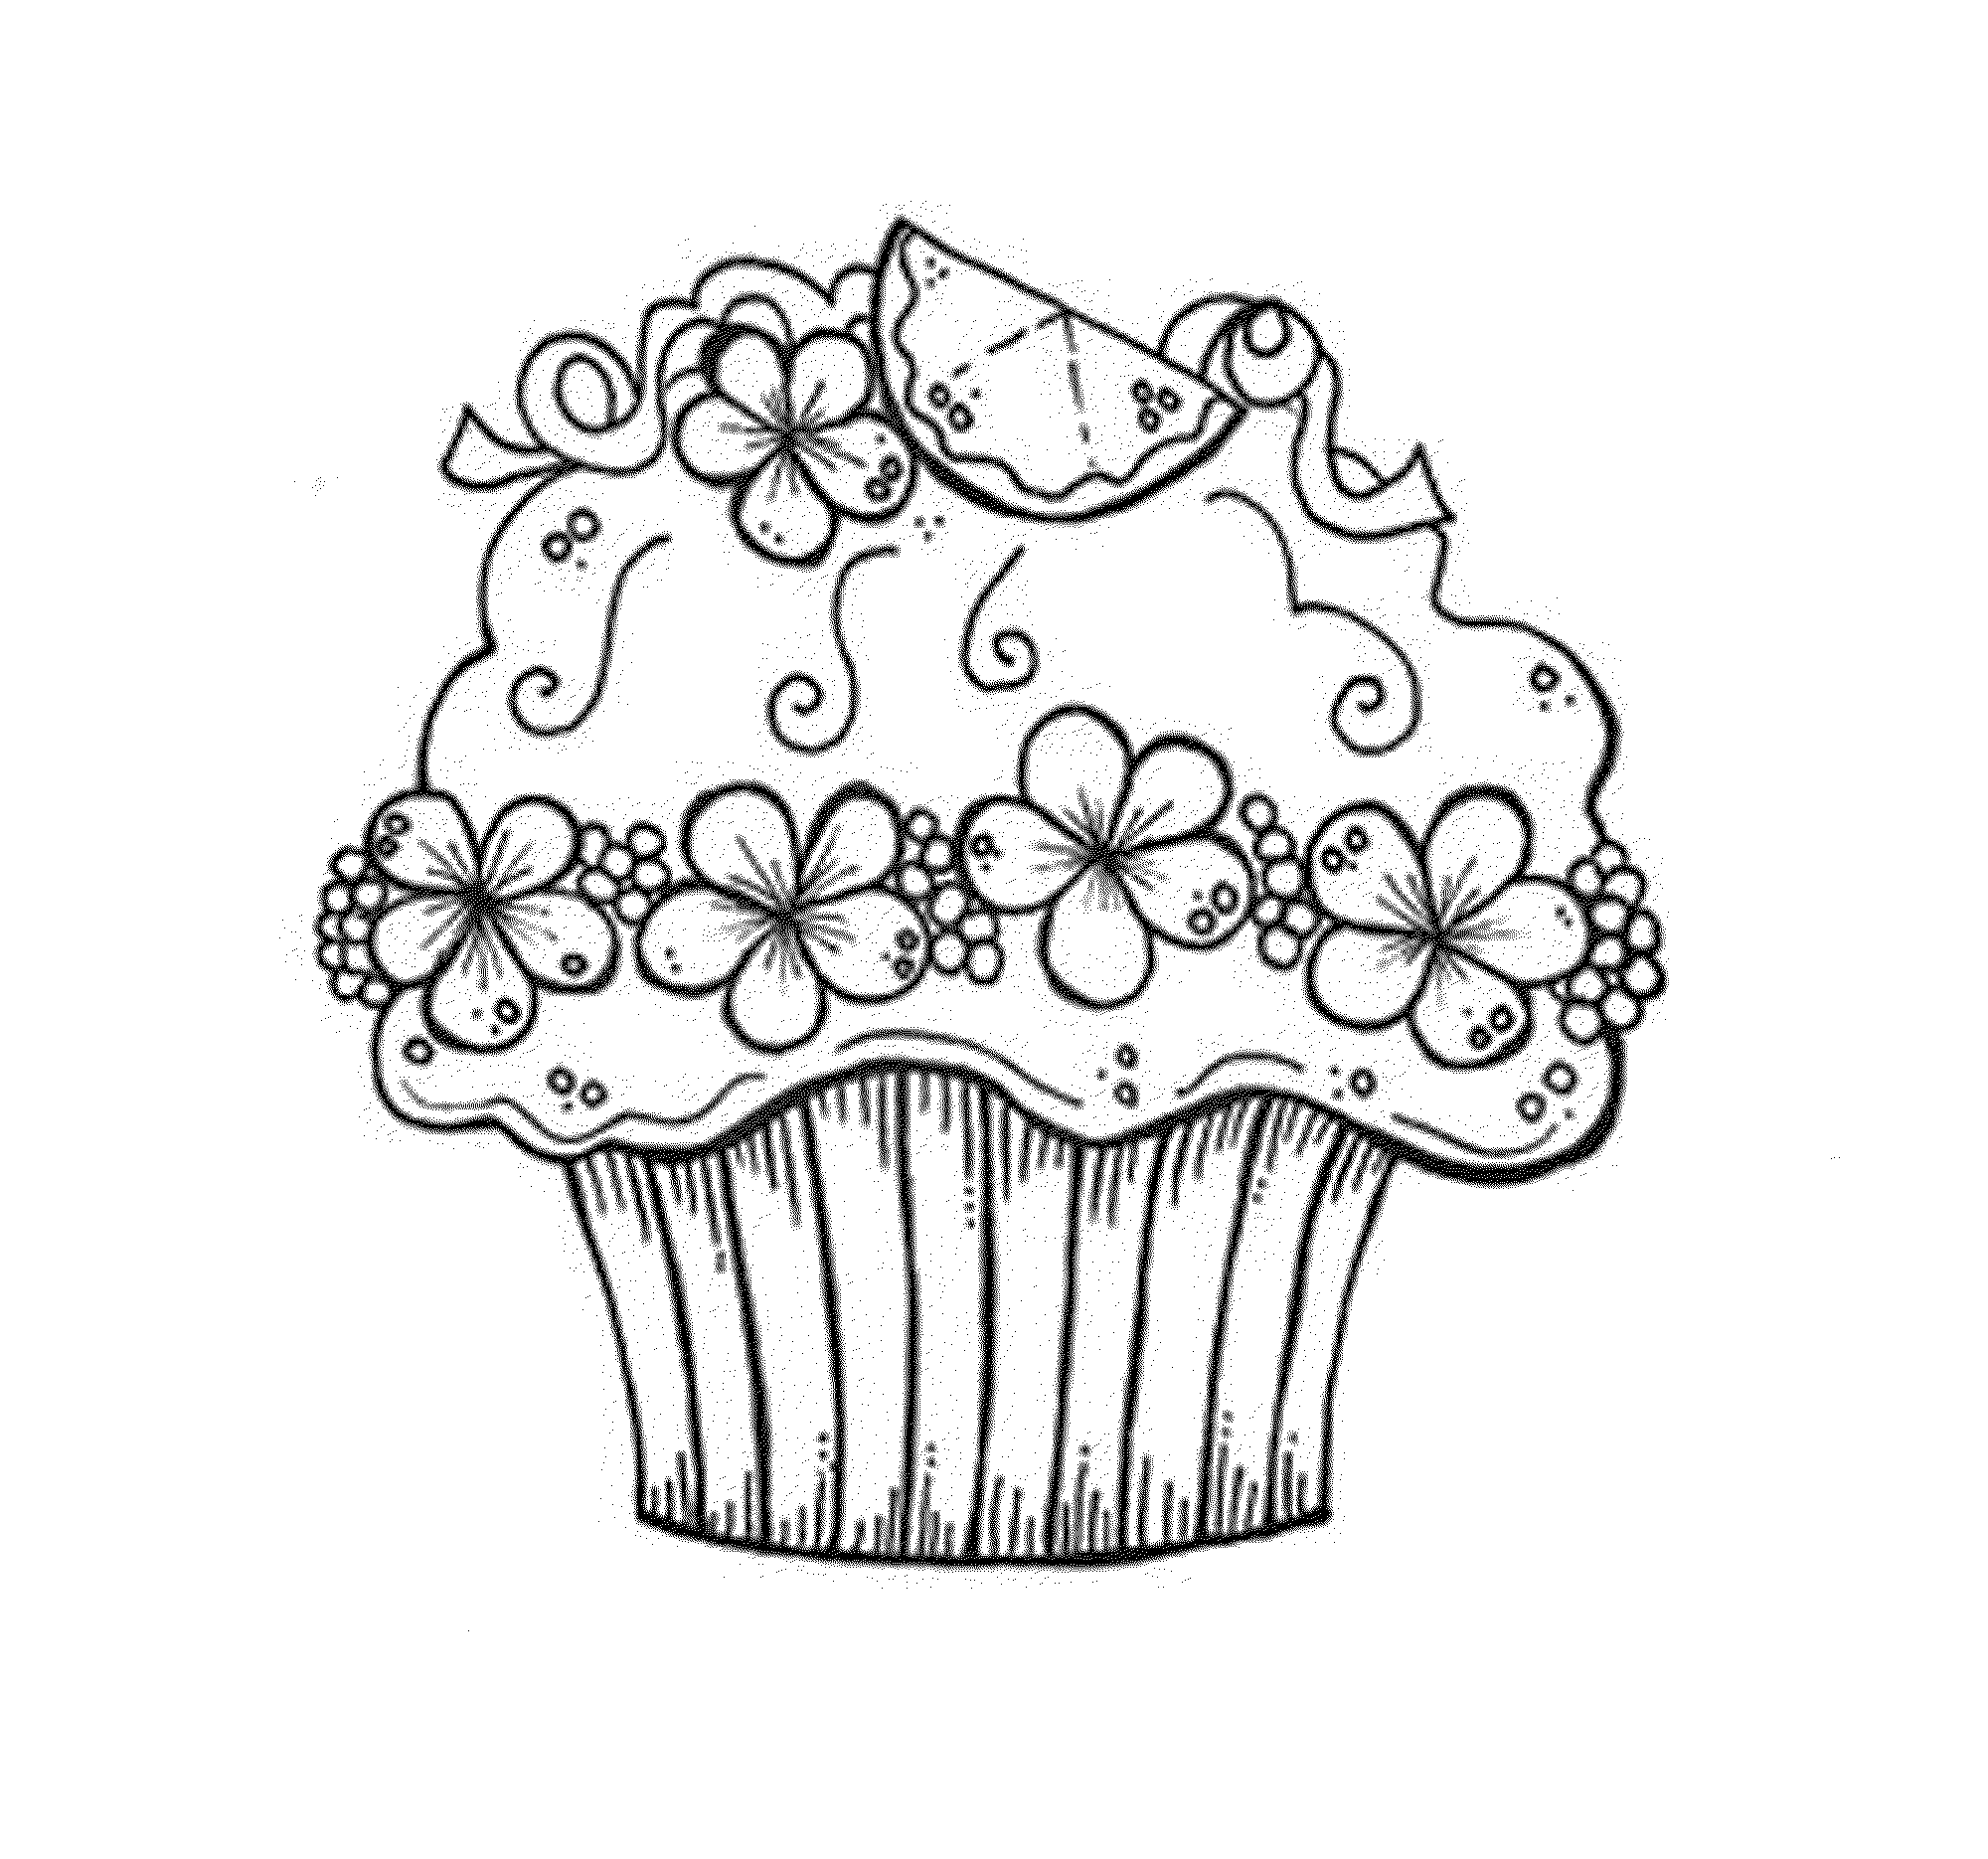 2000x1870 Coloring Pages Cupcake Printables Of Cupcakes Printable Kids Easy